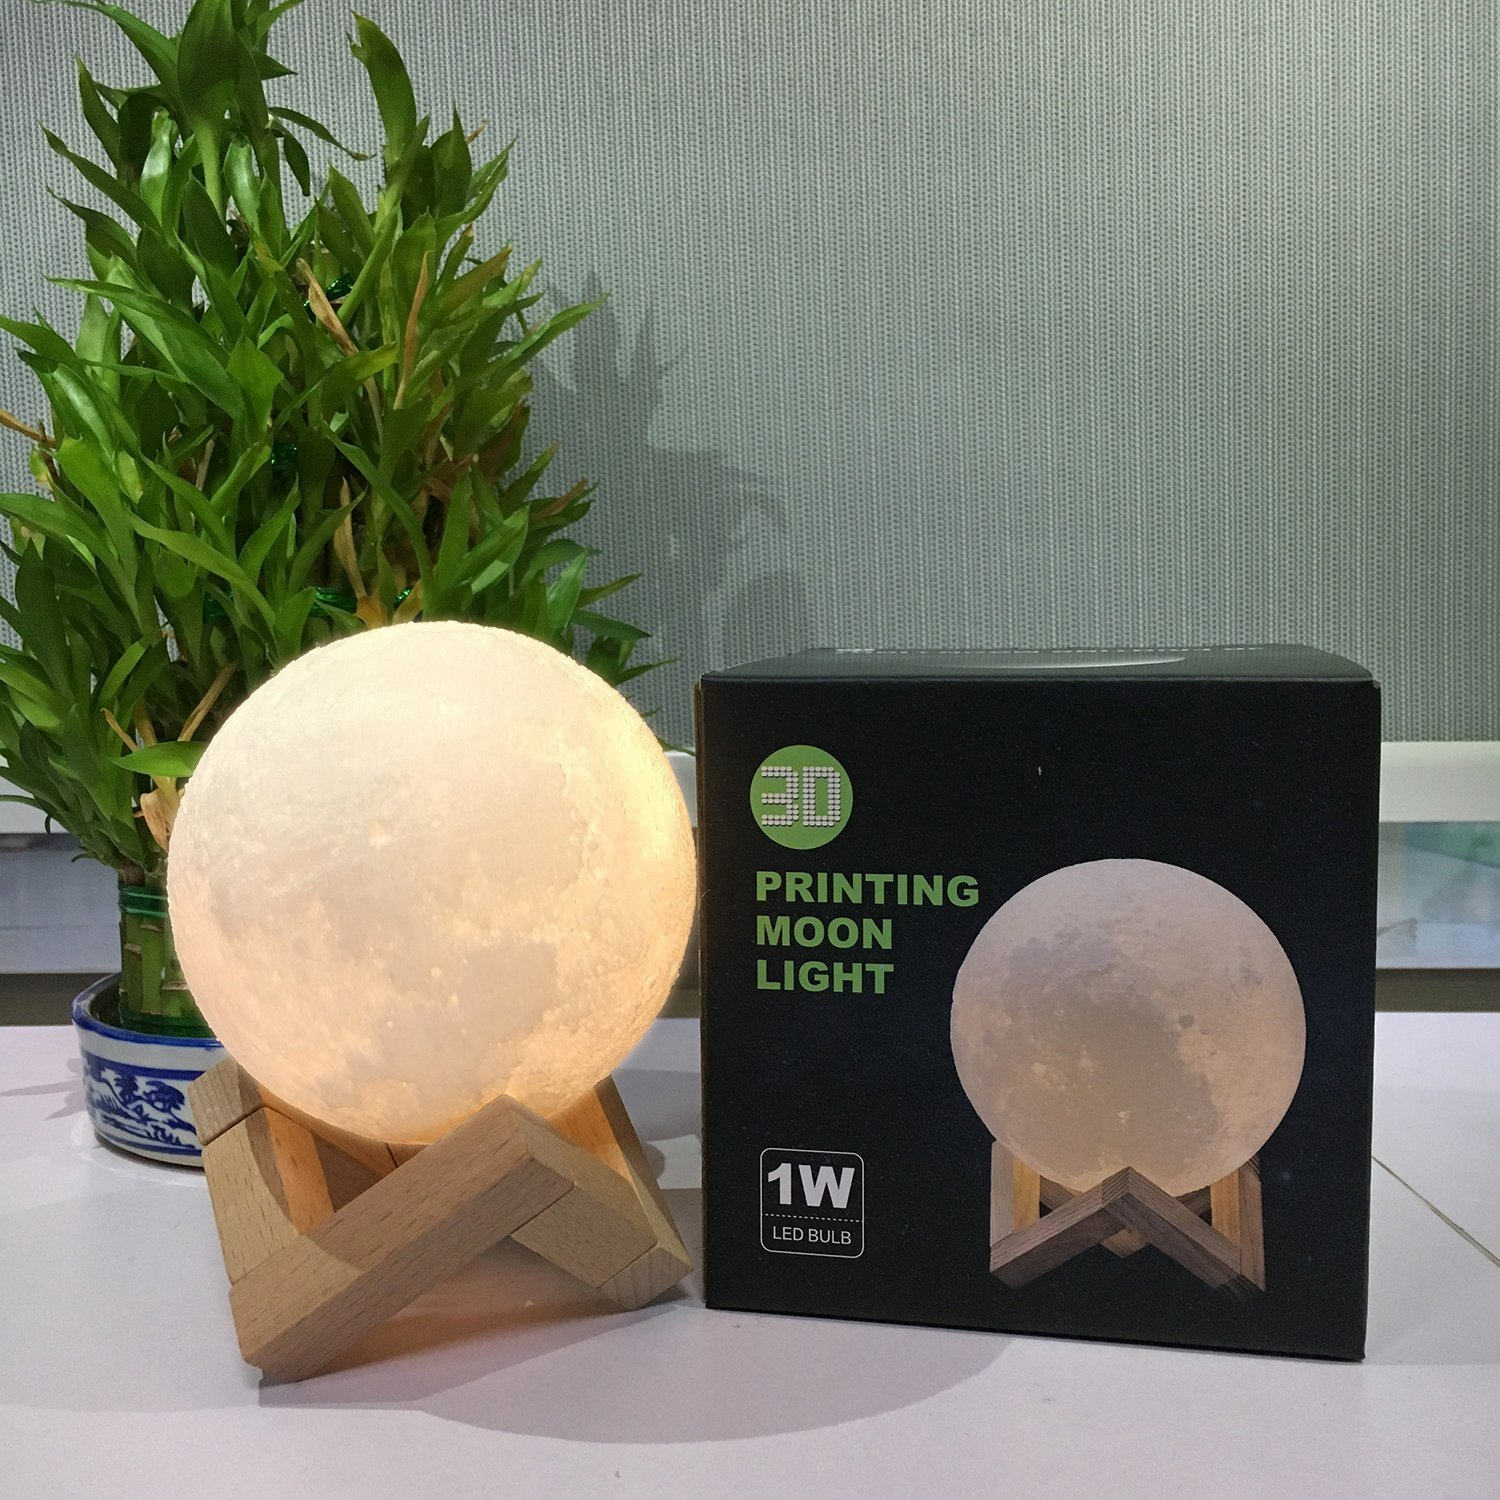 CPLA Lighting Night Light LED 3D Printing Moon Lamp, Warm and Cool White Dimmable Touch Control Brightness 3000K/6000K with USB